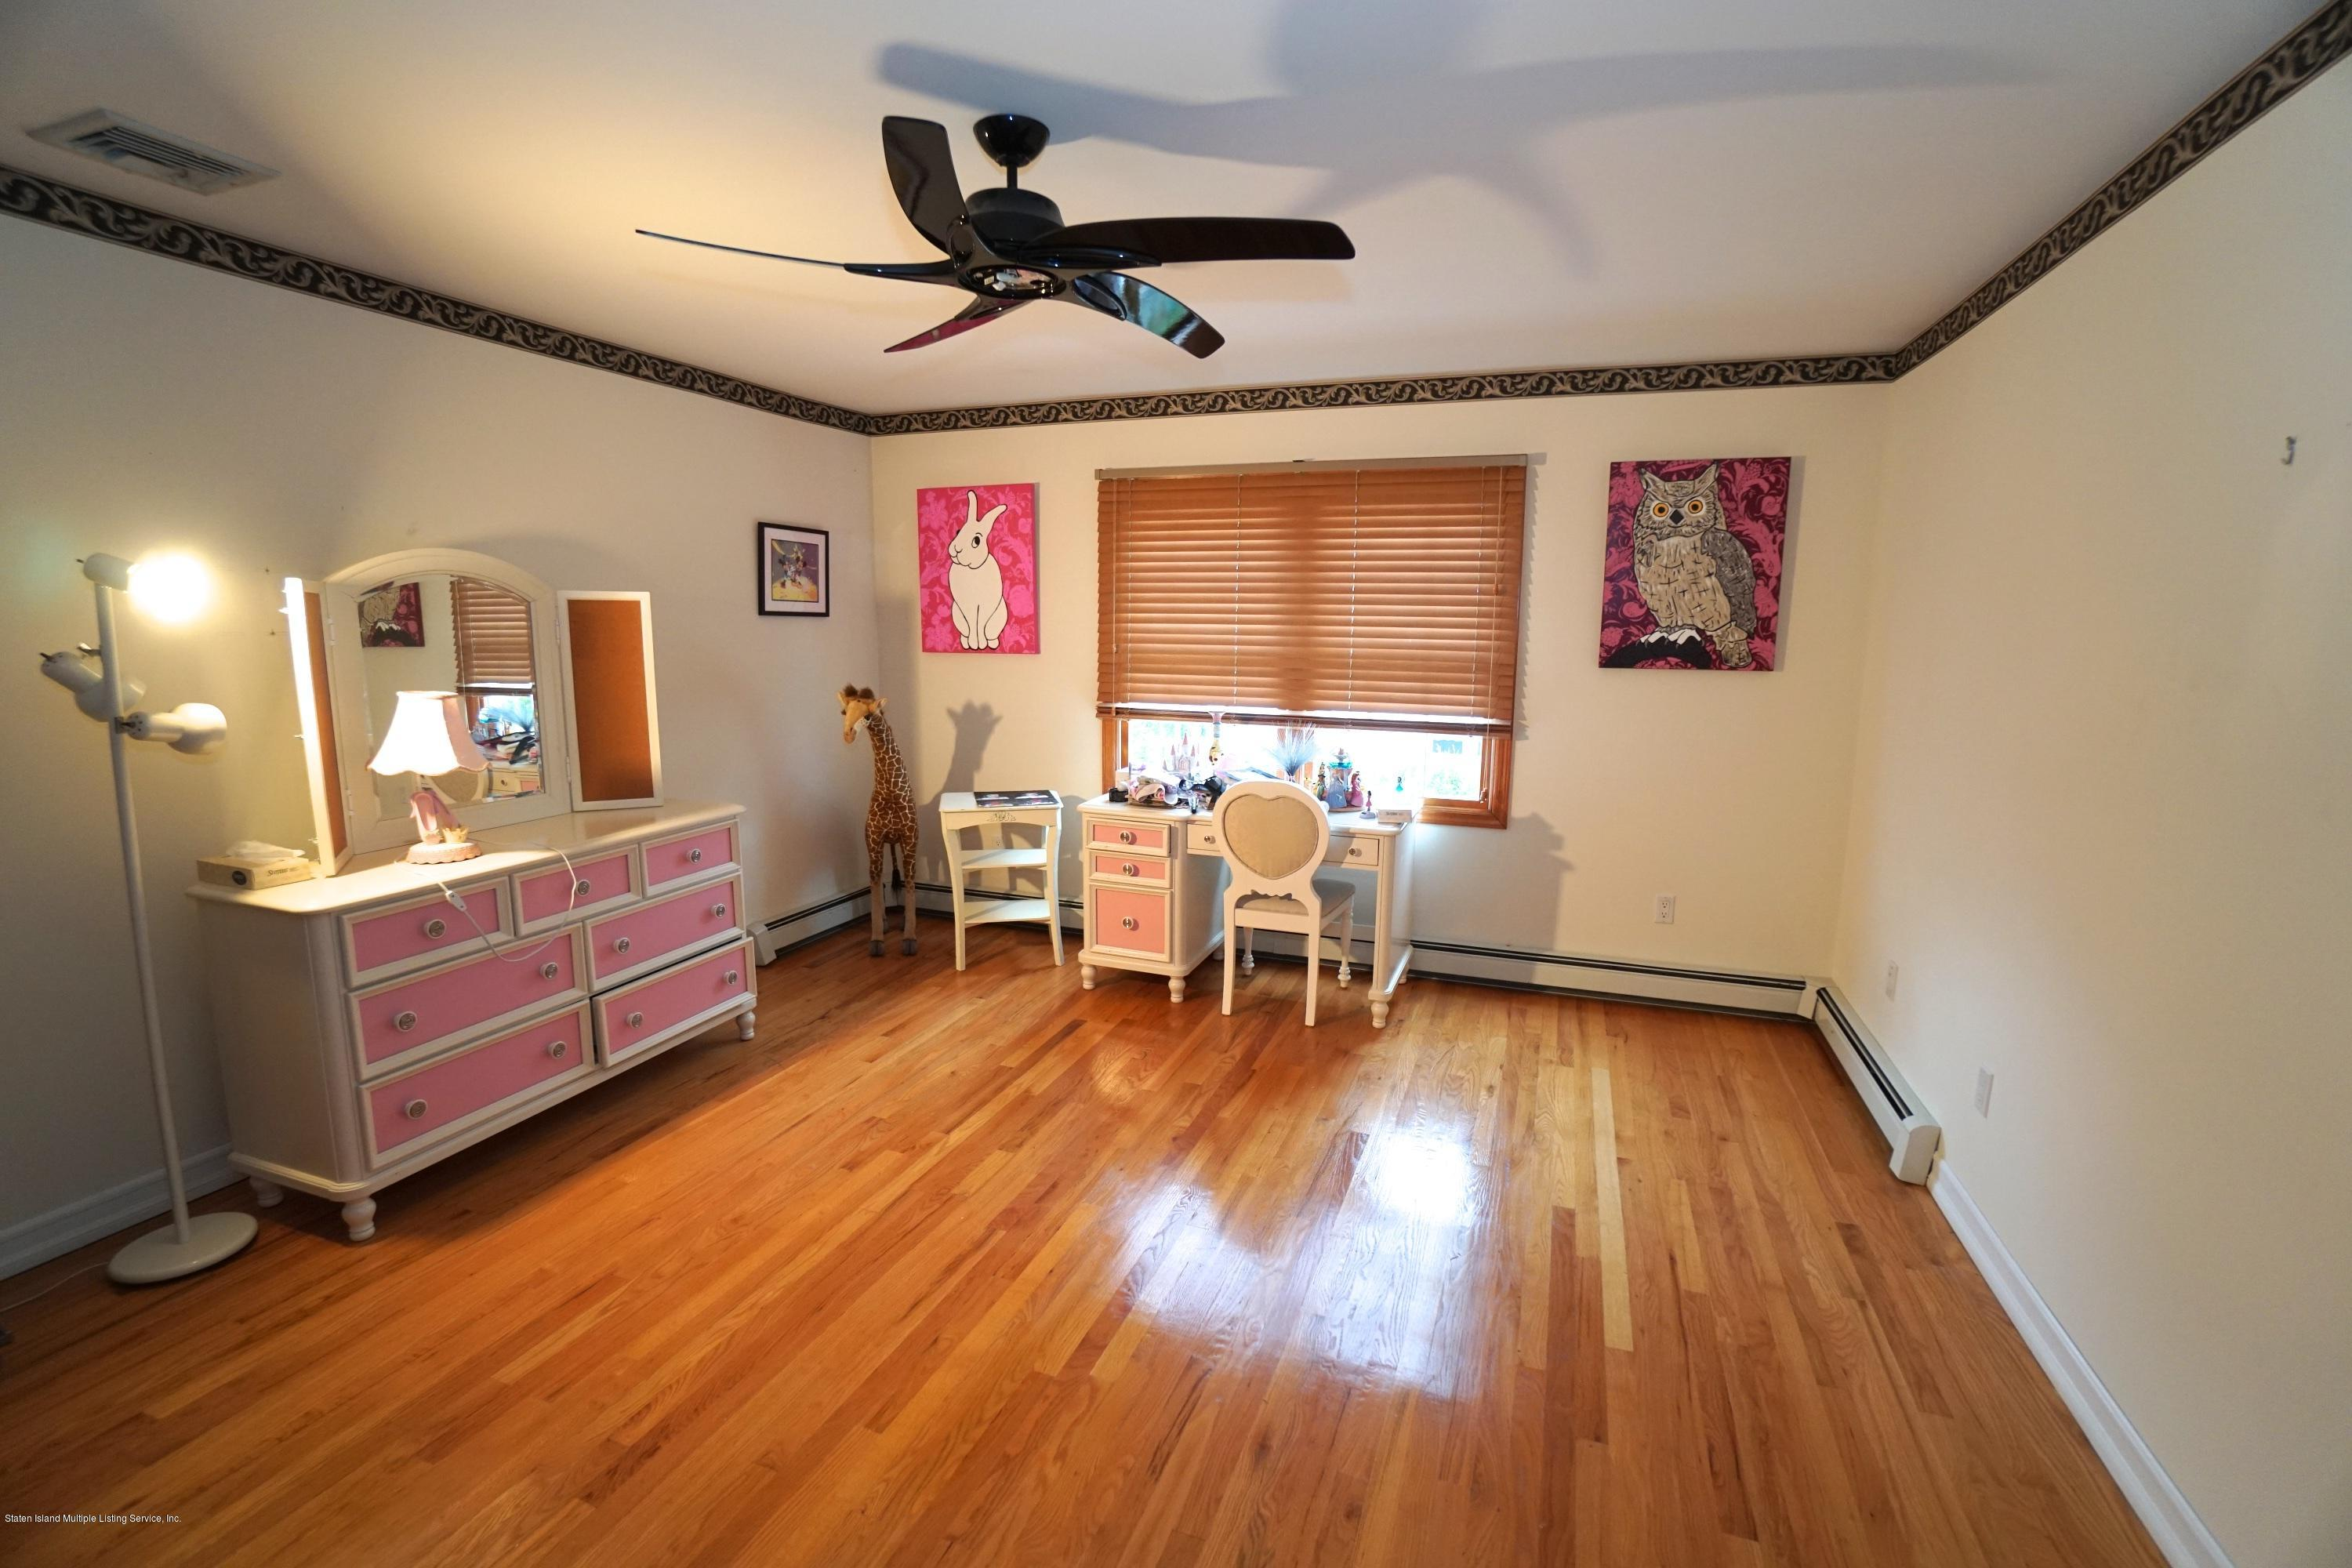 Single Family - Detached 120 Romer Road  Staten Island, NY 10304, MLS-1125309-24